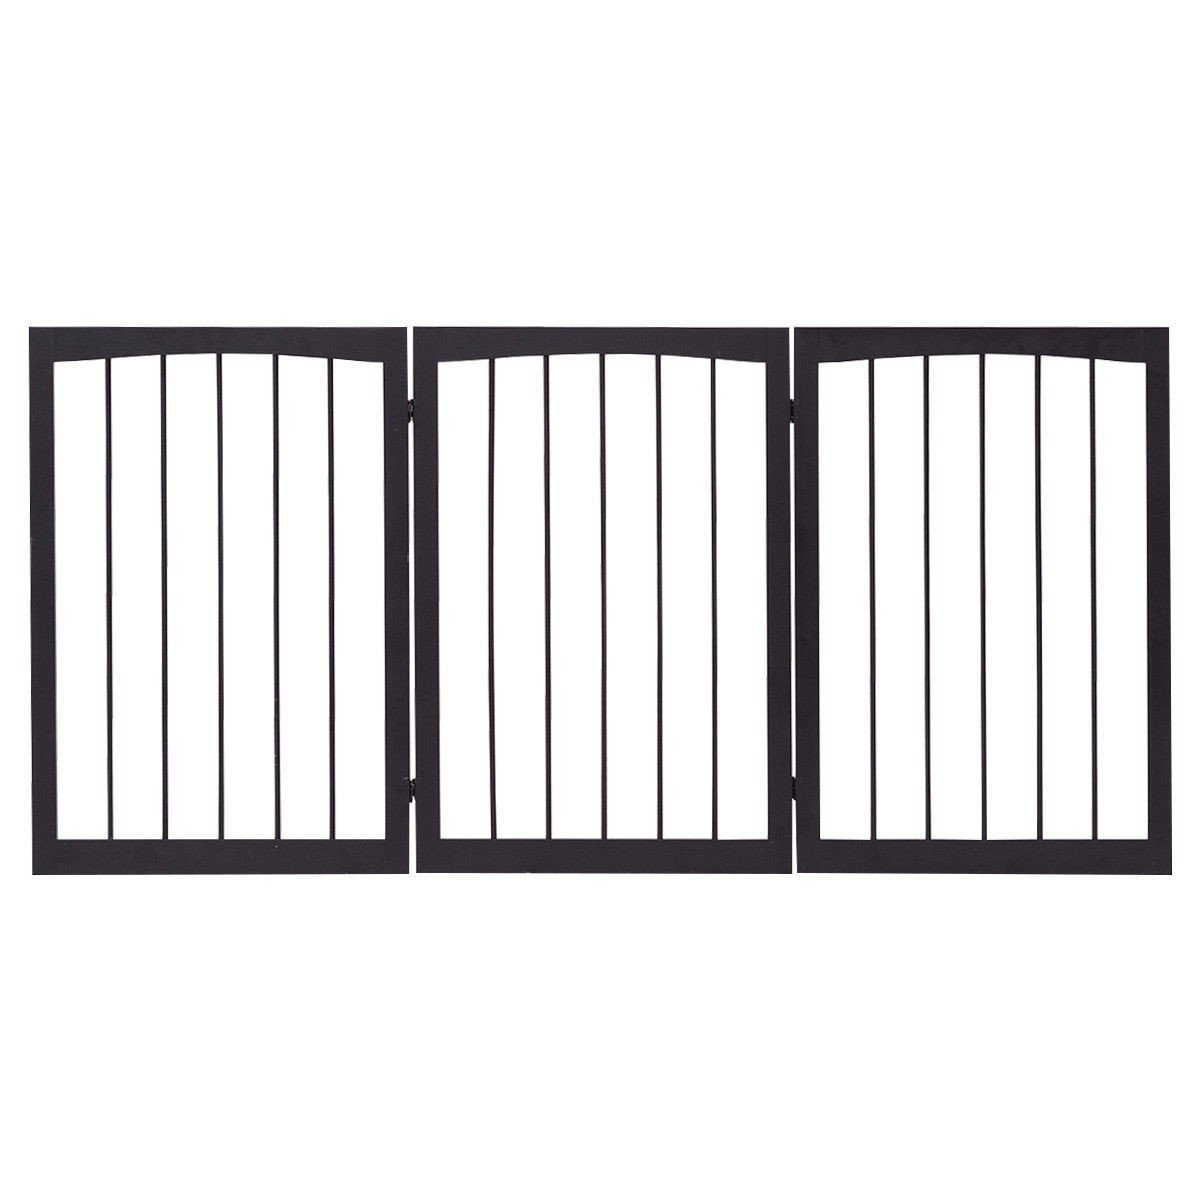 Costway Folding Adjustable Free Standing 3 Panel Wood Pet Dog Slide Gate Safety Fence + FREE E-Book Only By eight24hours